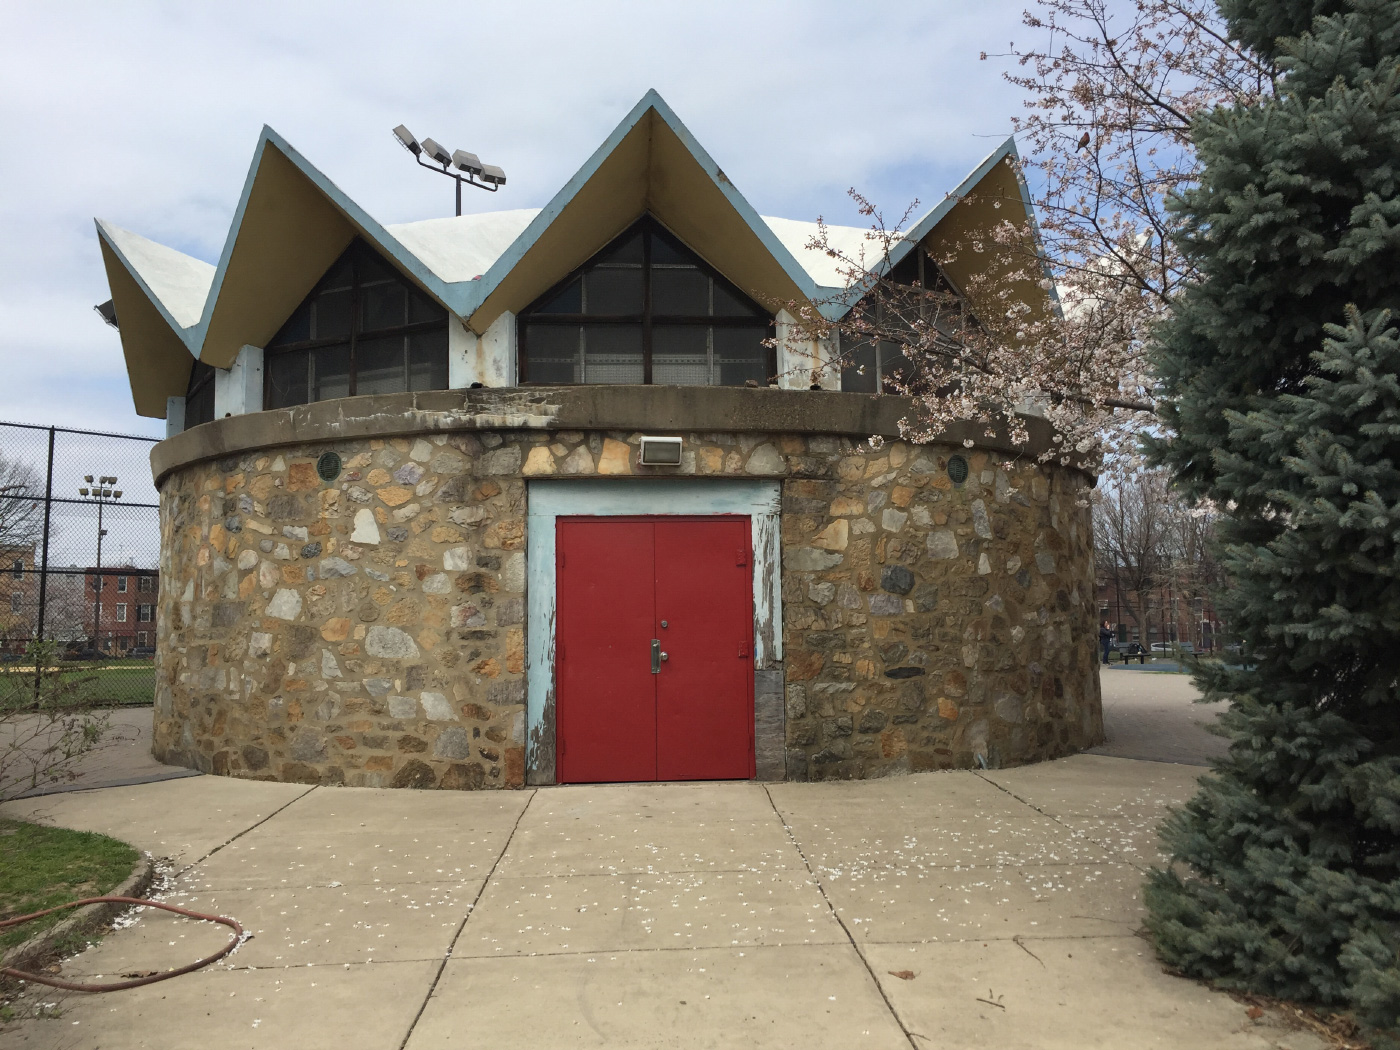 Photo of the Columbus Square pavilion, a small, circular structure with thick stone walls, a single red door, and an angular roof.